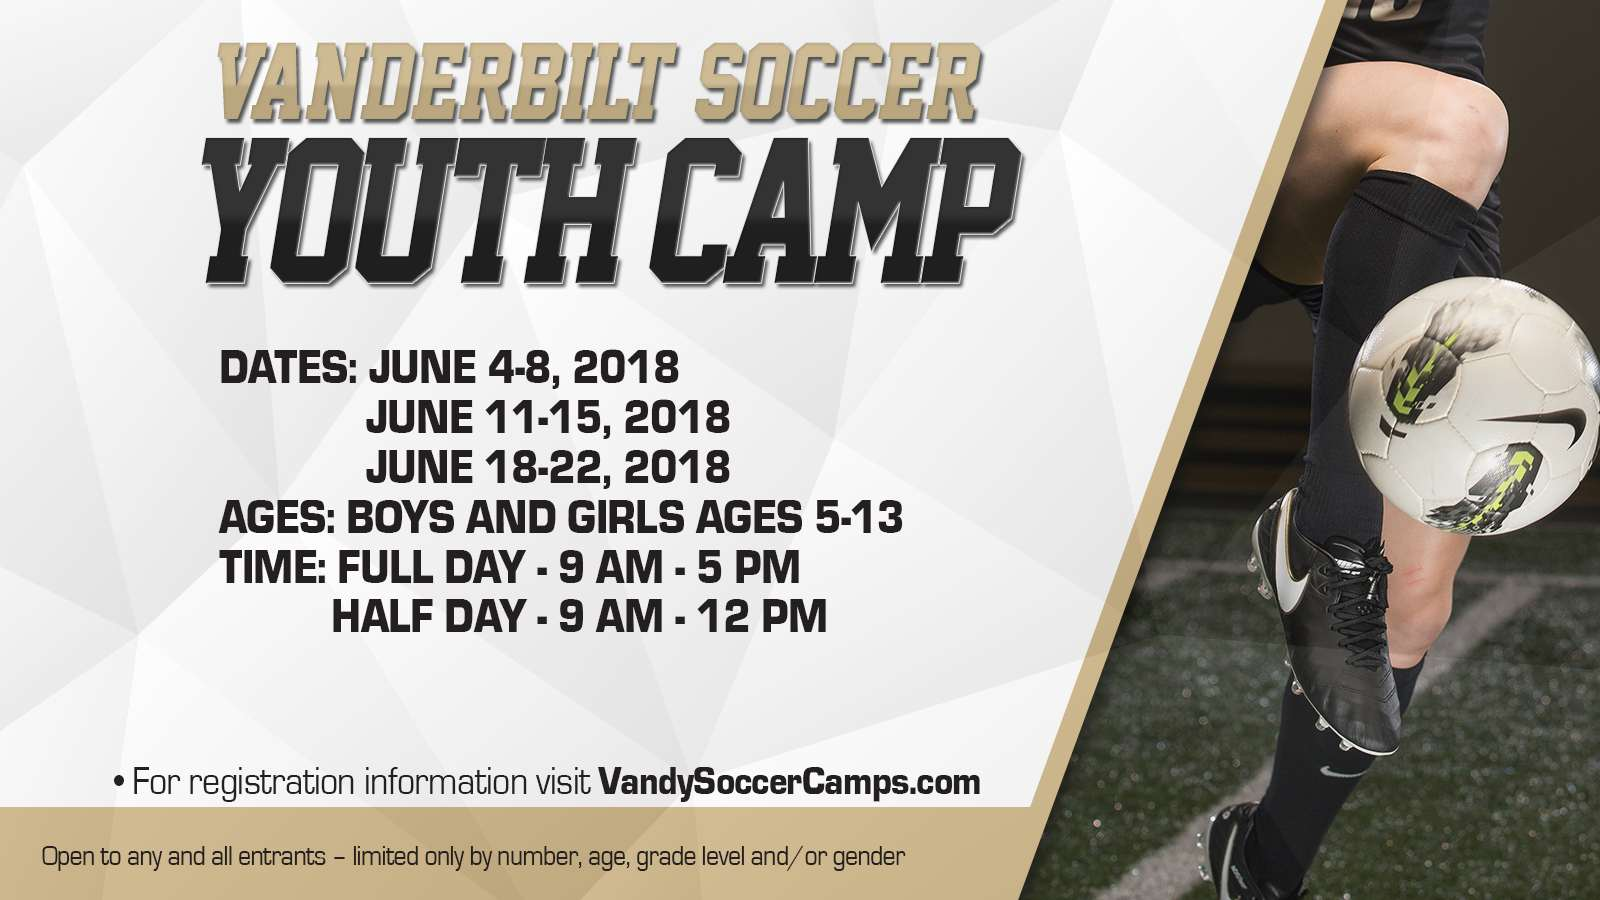 2018 Soccer Camp1 - Youth Camp2